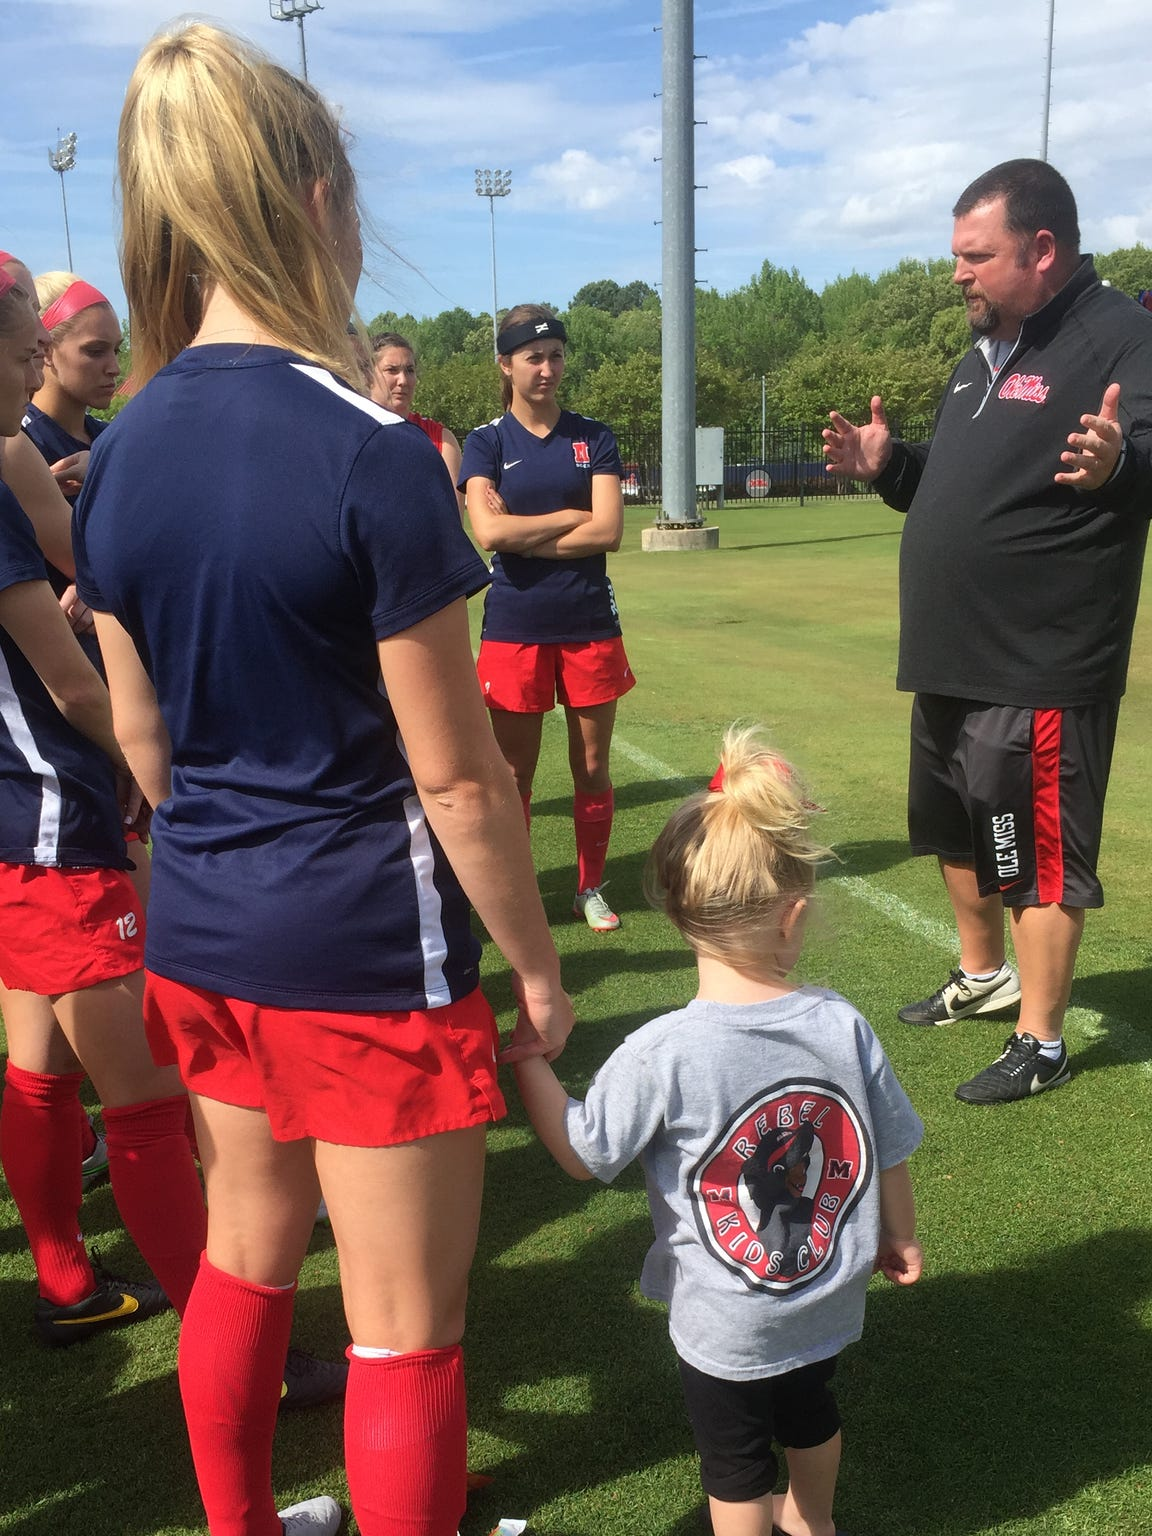 Sara Coleman attends practice while holding her daughter's hand.